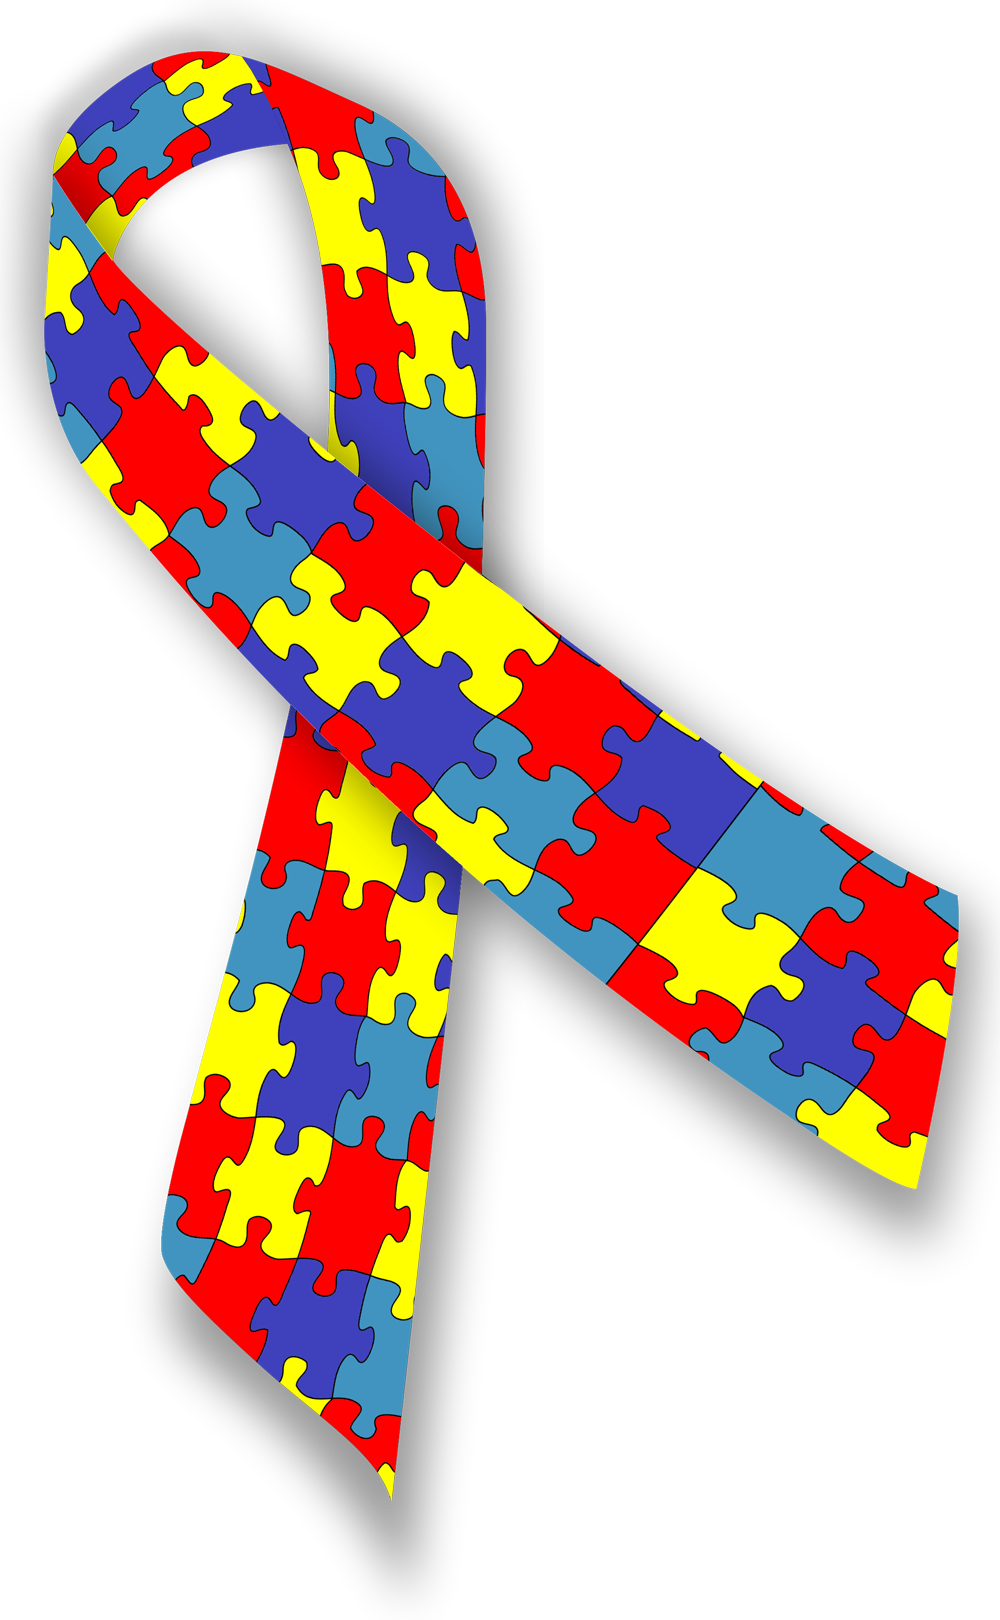 Puzzle transparent autism. Awareness the piece meaning